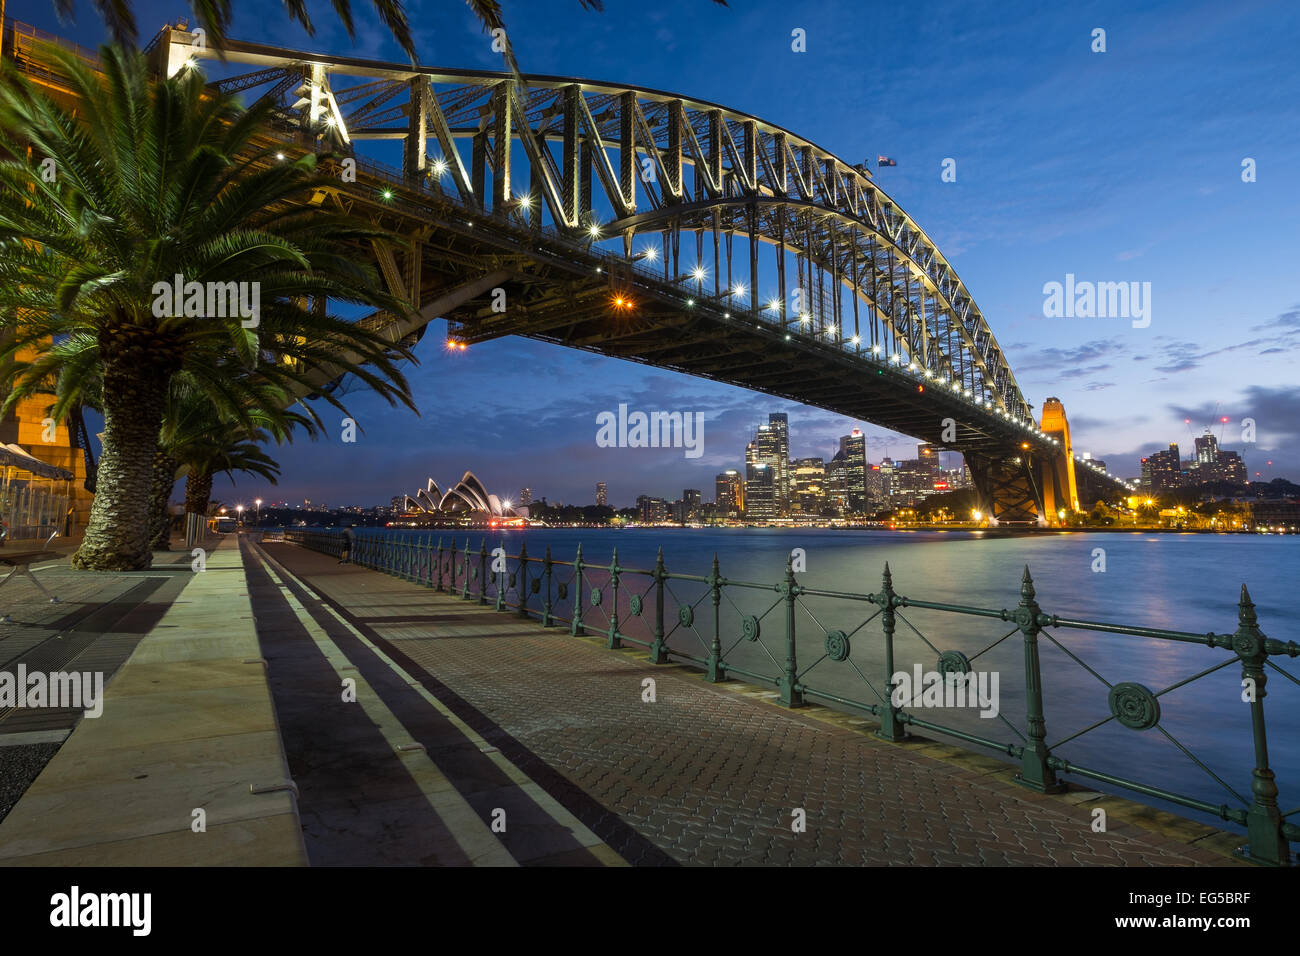 SYDNEY, AUSTRALIA- JANUARY 5, 2015: The iconic Sydney Harbour Bridge with Sydney Opera House in the background at - Stock Image